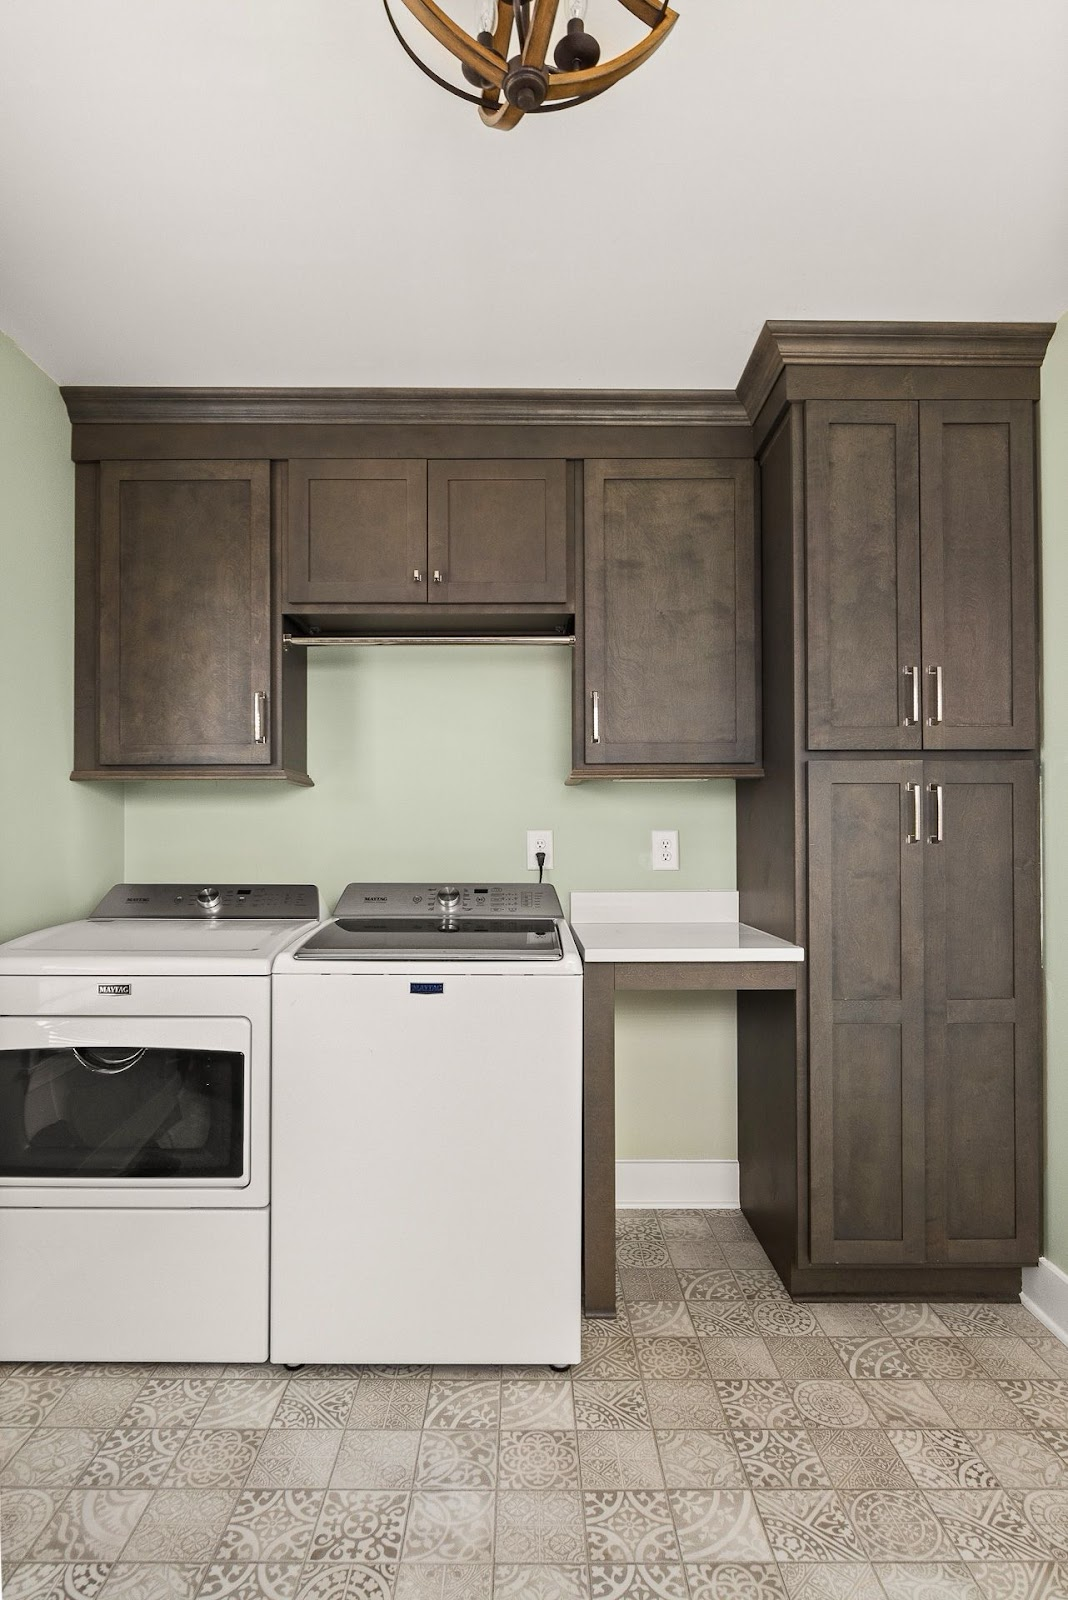 Superior construction and design Lebanon, TN 1970s Ranch Reno laundry room with dark cabinets ans small folding counter, patterned tiled floor